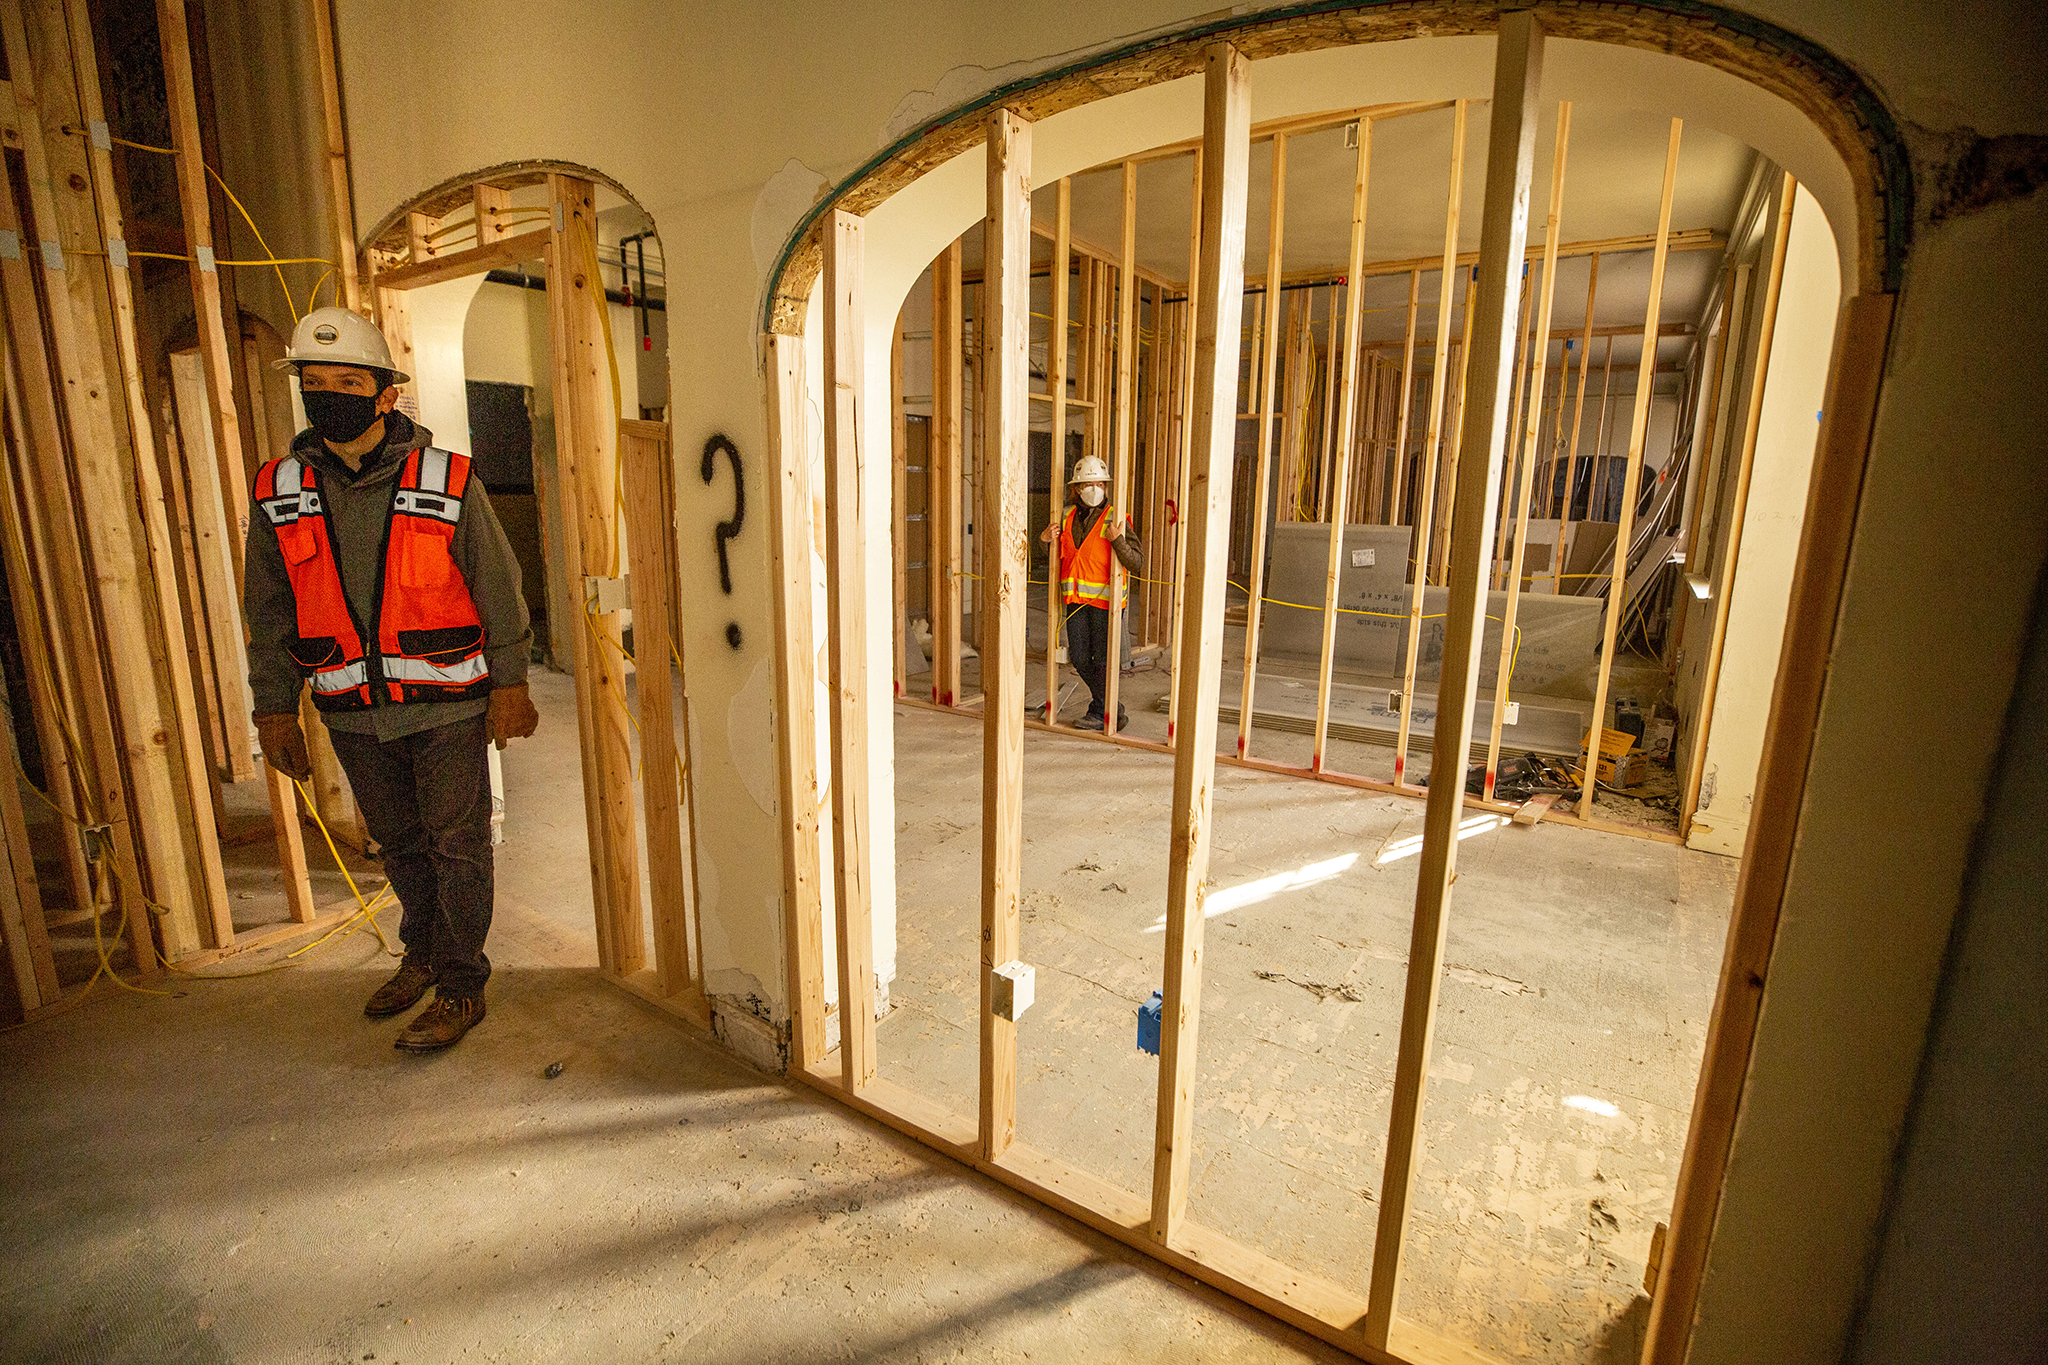 Grant D. Bennett and Susan Ely give a tour of Loretto Heights' historic Pancratia Hall, which is being renovated and will soon become full of affordable housing units. Harvey Park South, Feb. 10, 2021.